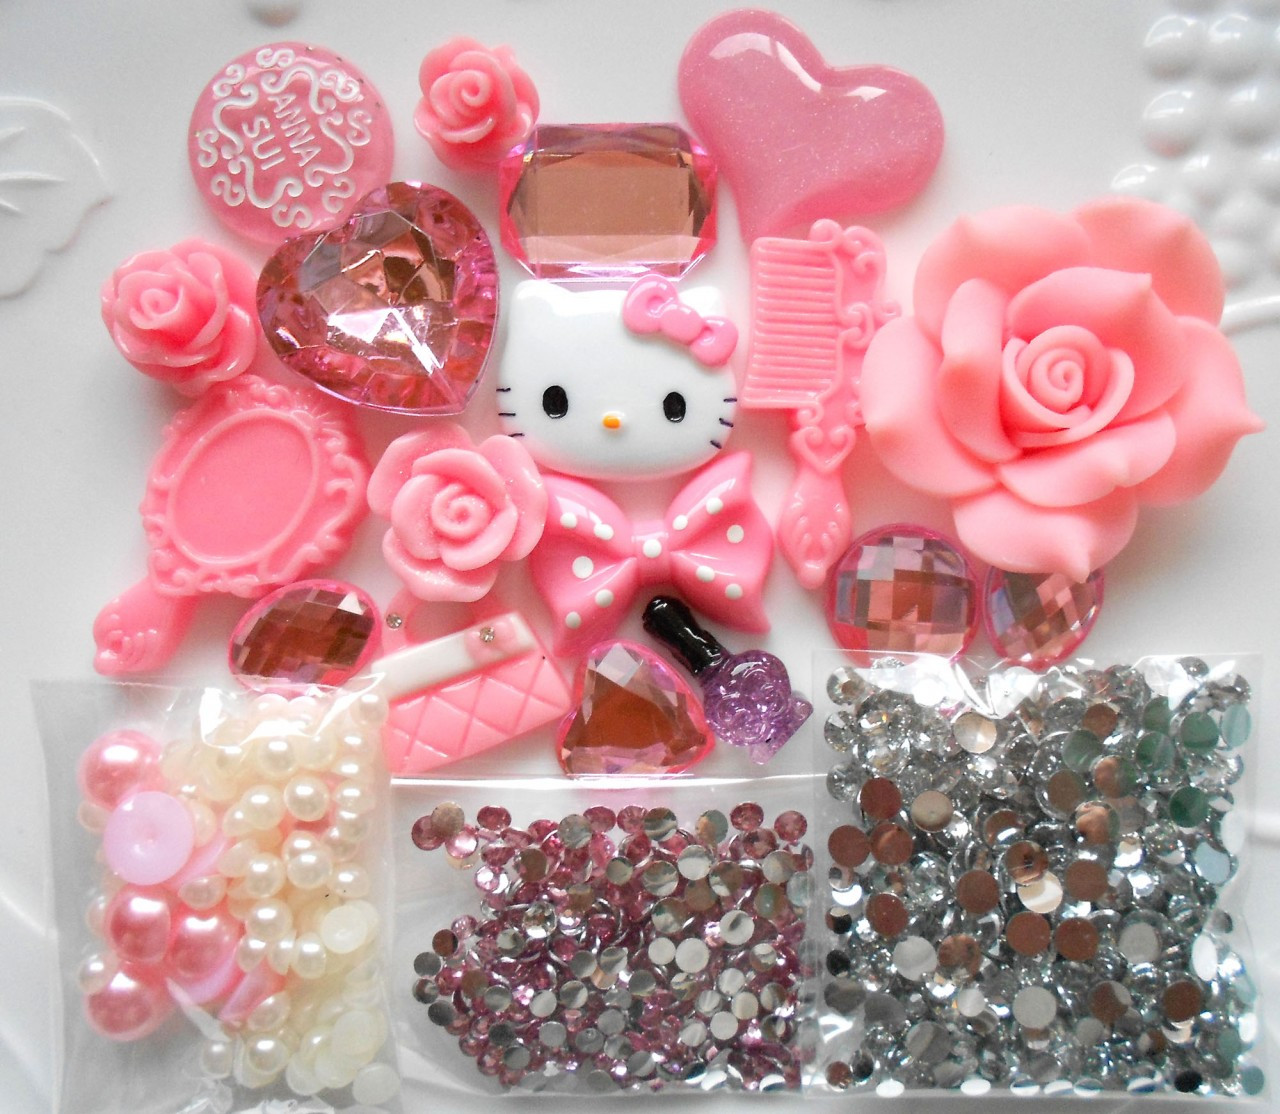 Natuba - Kawaii Cabochons 100 Set 22 Hearts Cookies Bows